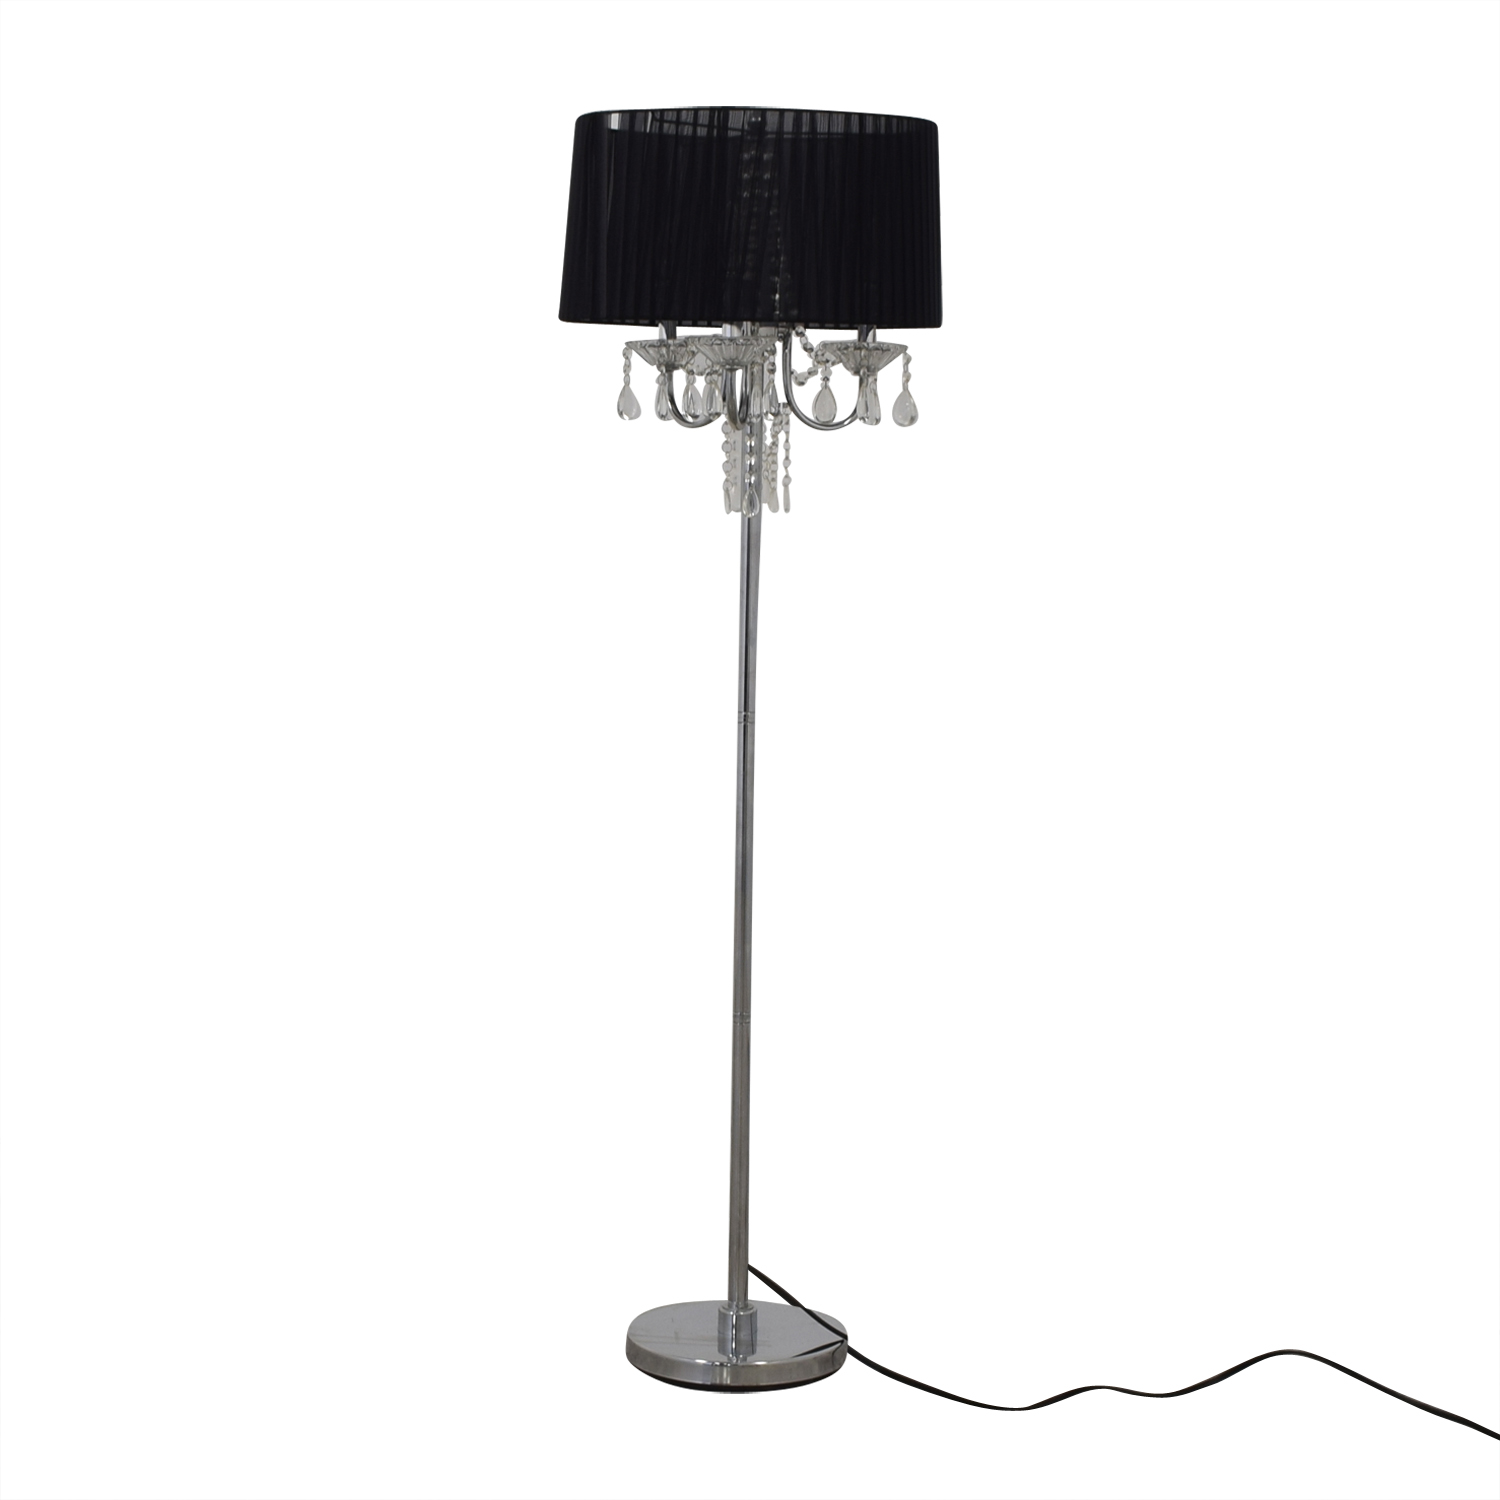 Decorative Floor Lamp / Lamps